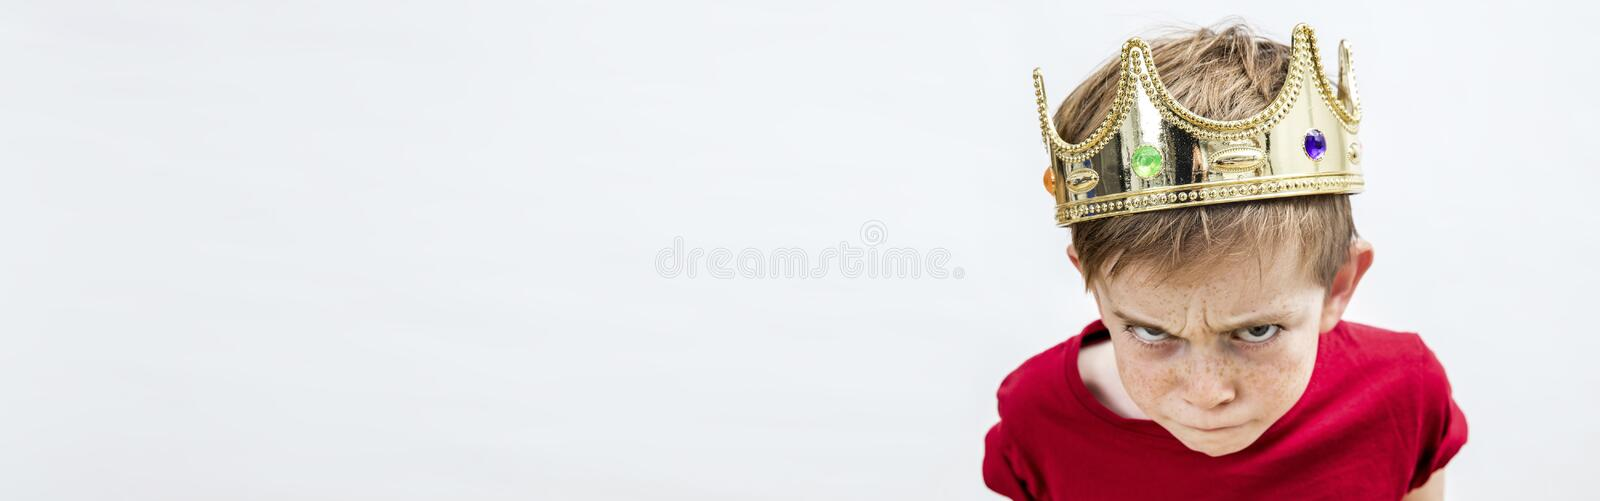 Banner of rebellious spoiled kid for mad attitude, white background. Long banner of rebellious beautiful spoiled kid with frowning freckles wearing a king crown stock image